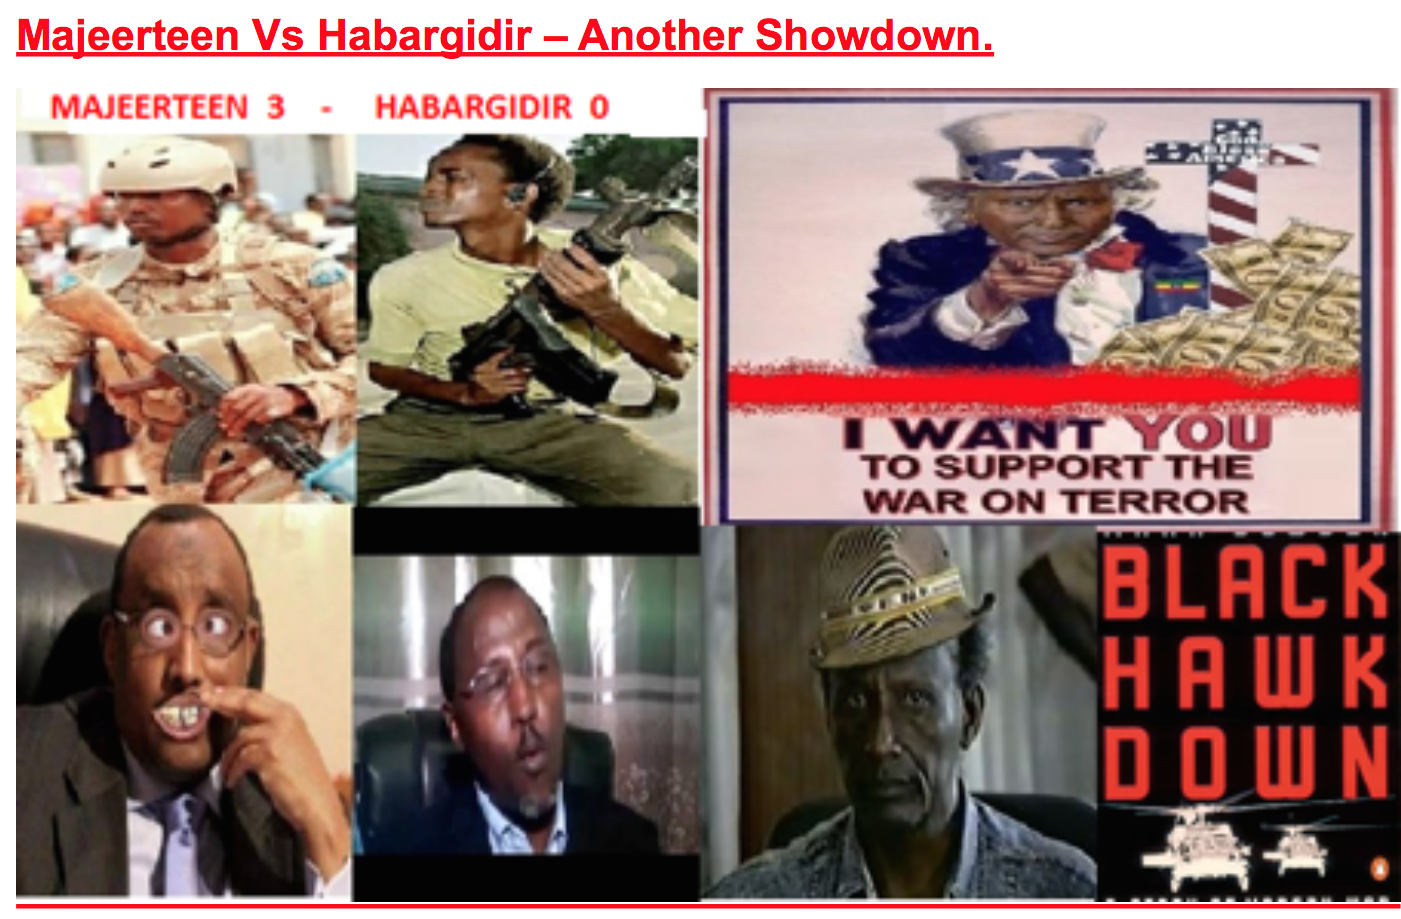 Somalia:Majeerteen Vs Habargidir – Another Showdown.